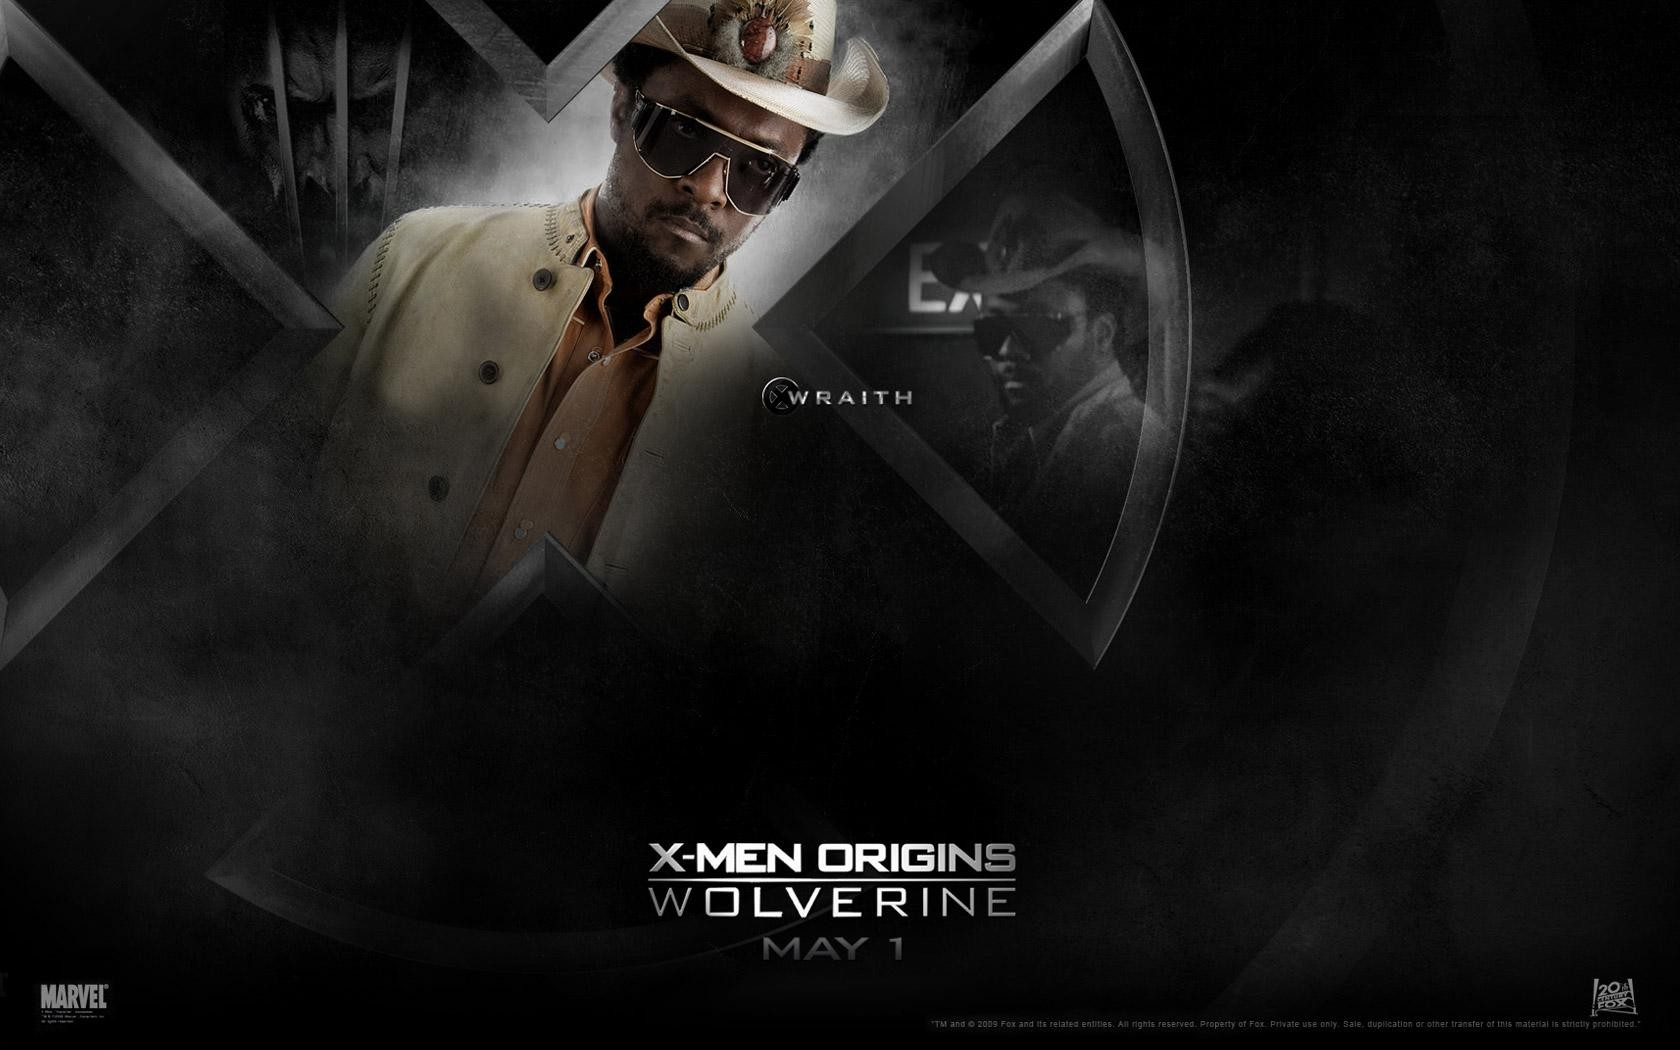 Un wallaper del film X-Men - Le origini: Wolverine con Will i Am, interprete di John Wraith